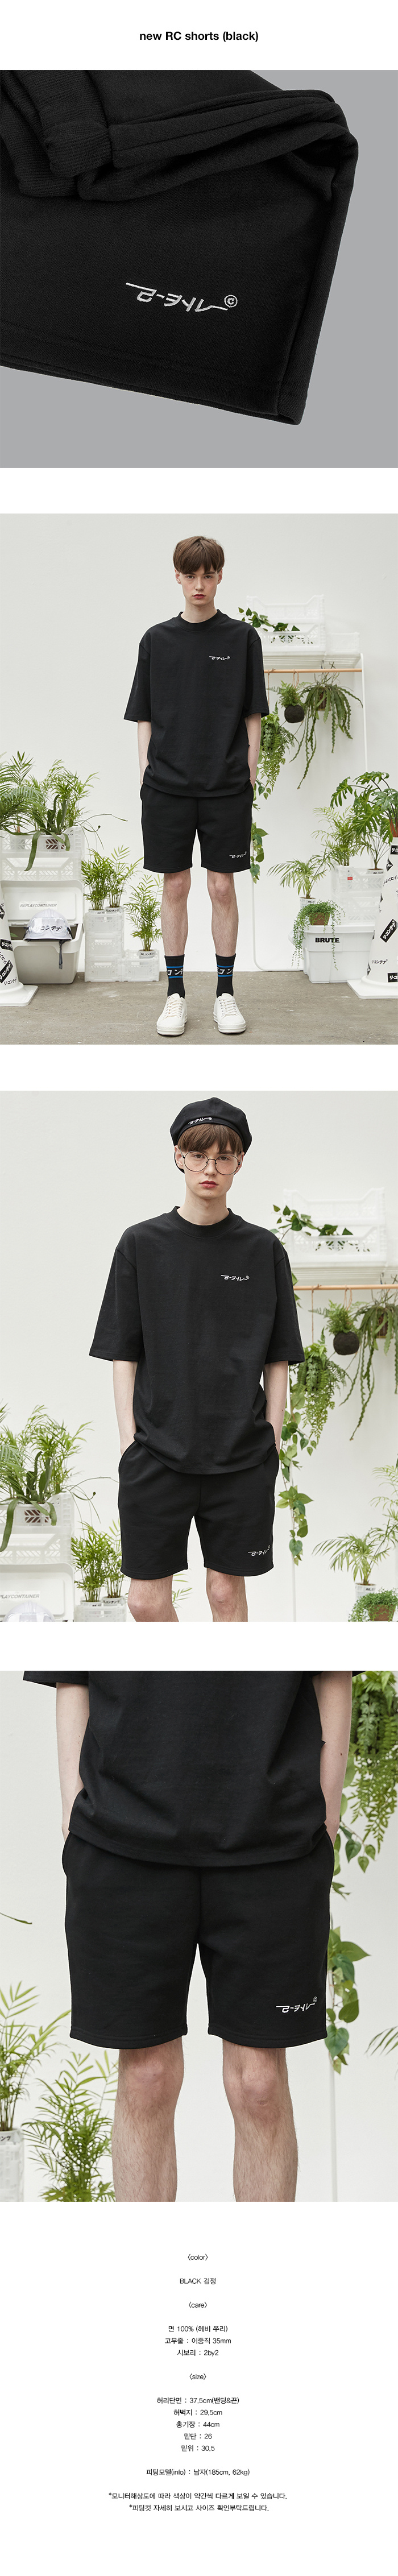 리플레이컨테이너(REPLAY CONTAINER) new RC shorts (black)